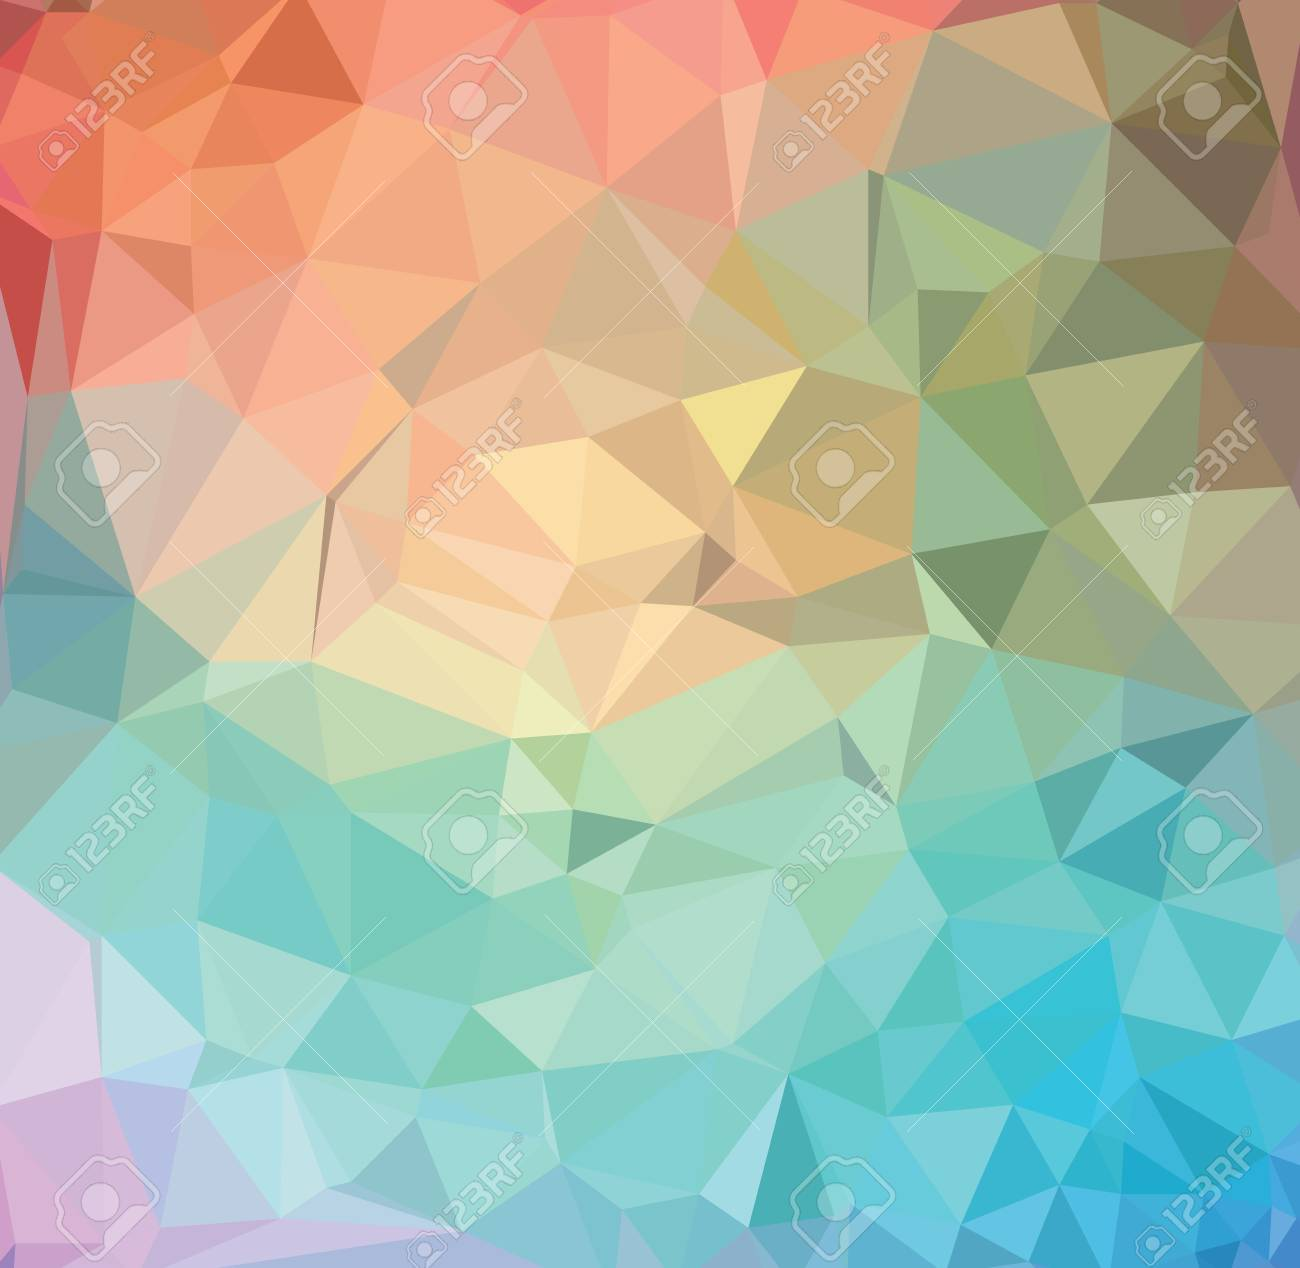 Vector abstract geometrical background - 42531068